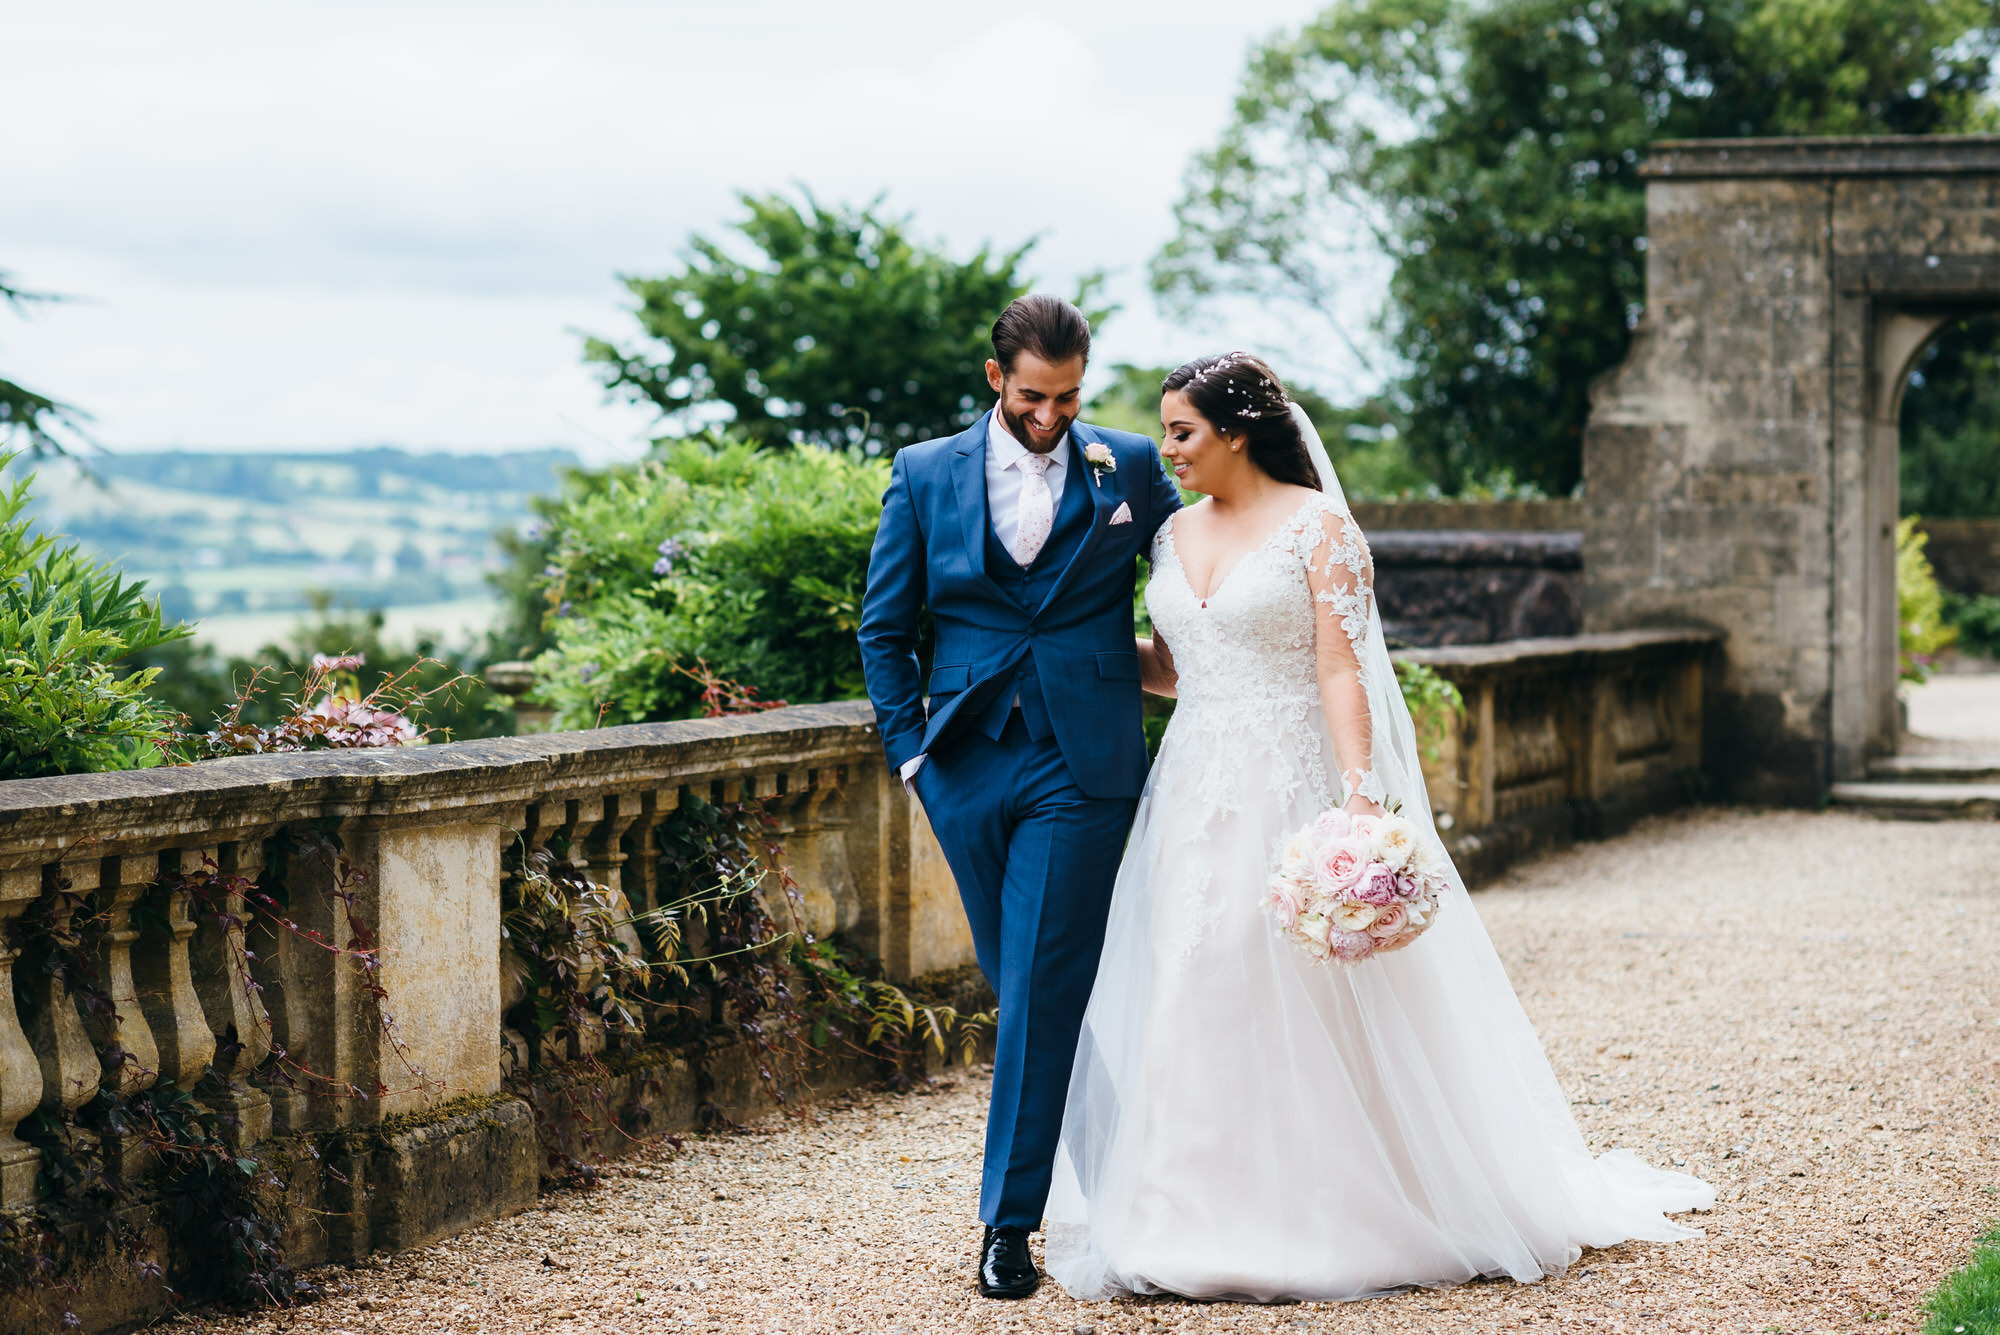 Bride and groom walking along terrace at Coombe lodge wedding venue